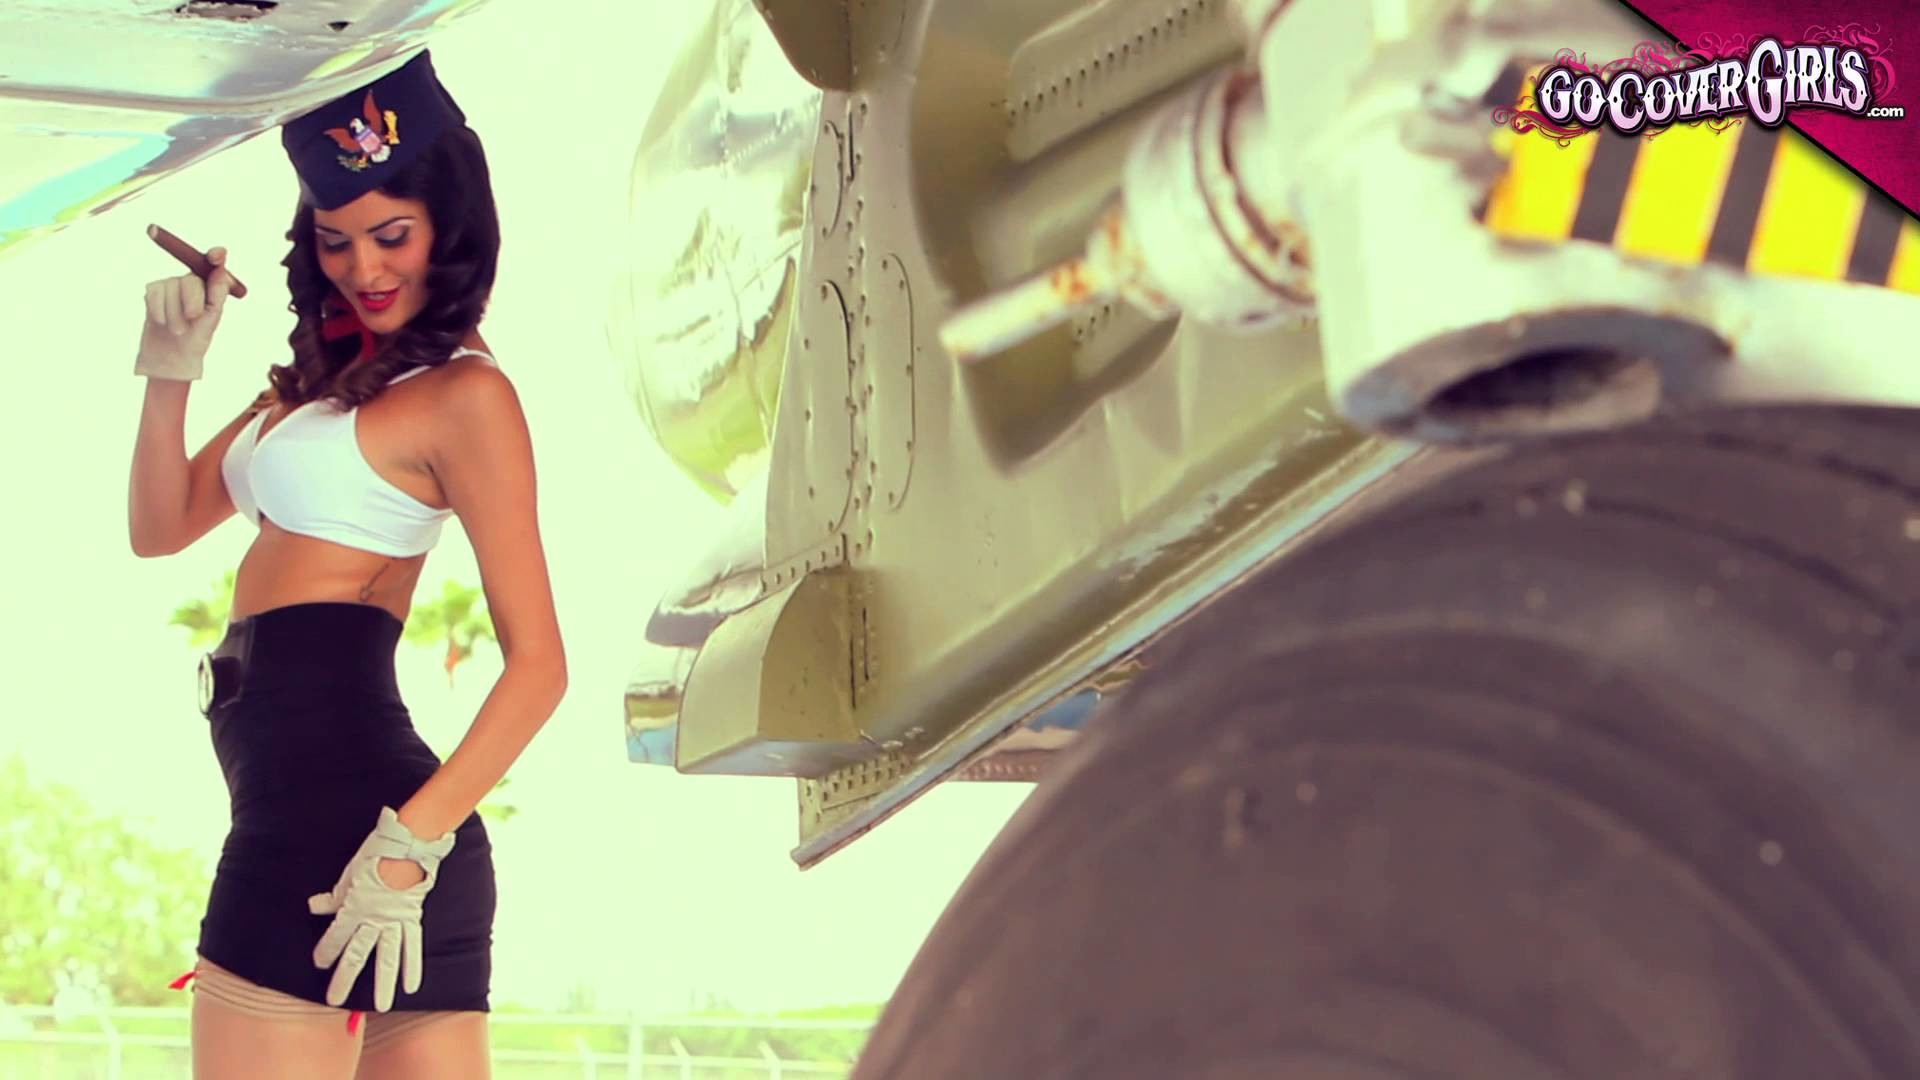 1920x1080 Sindy Perez - Military Pin Up Shoot